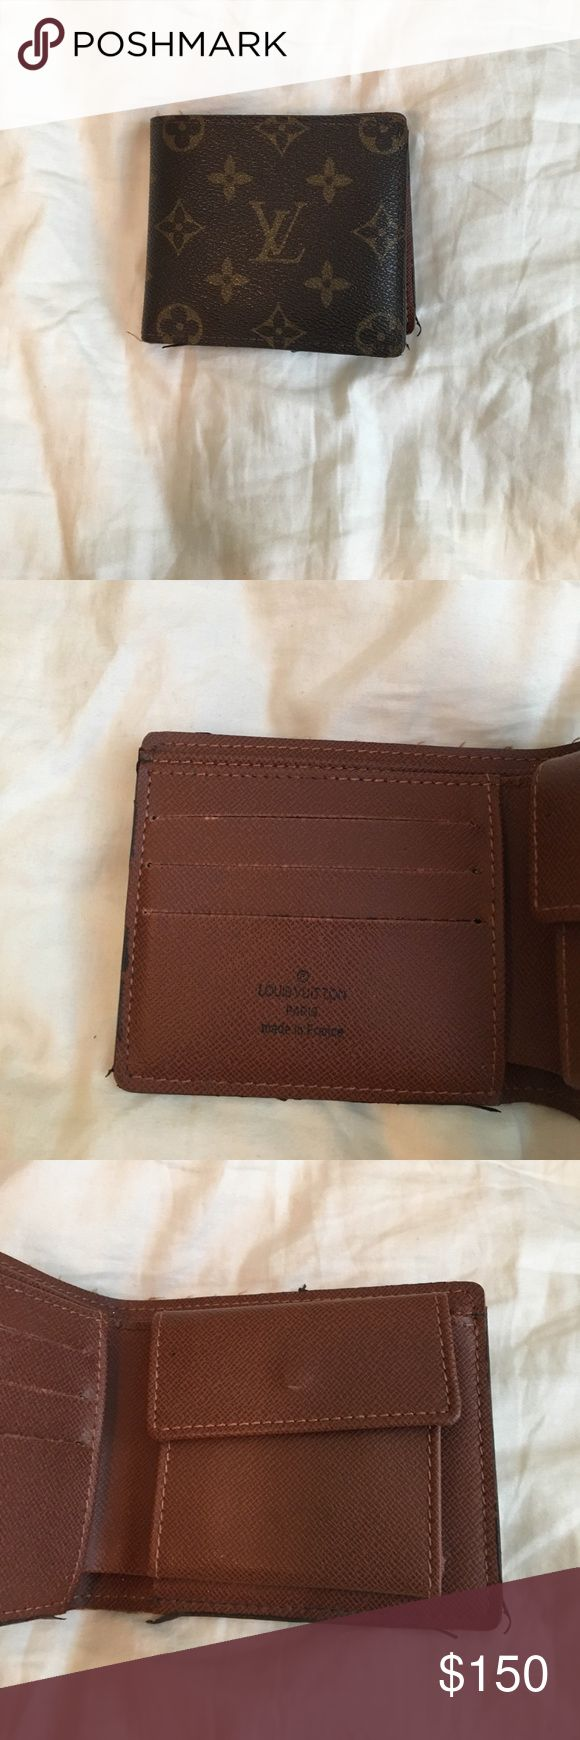 Original Louis Vuitton Wallet Used / Original Design/ 3 Card Slots / Coin pouch / TAKING OFFERS / quality replica Louis Vuitton Accessories